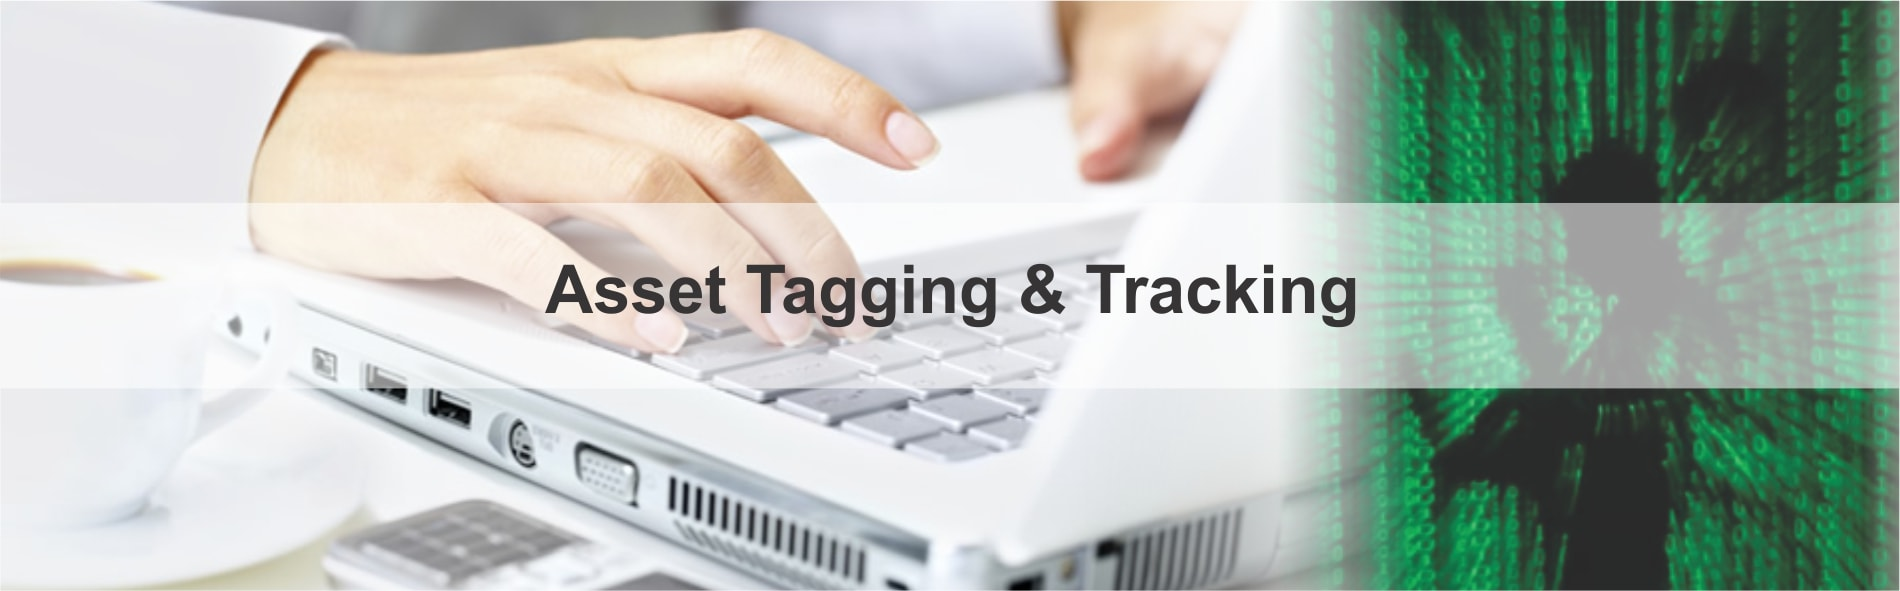 Asset Tagging & Tracking